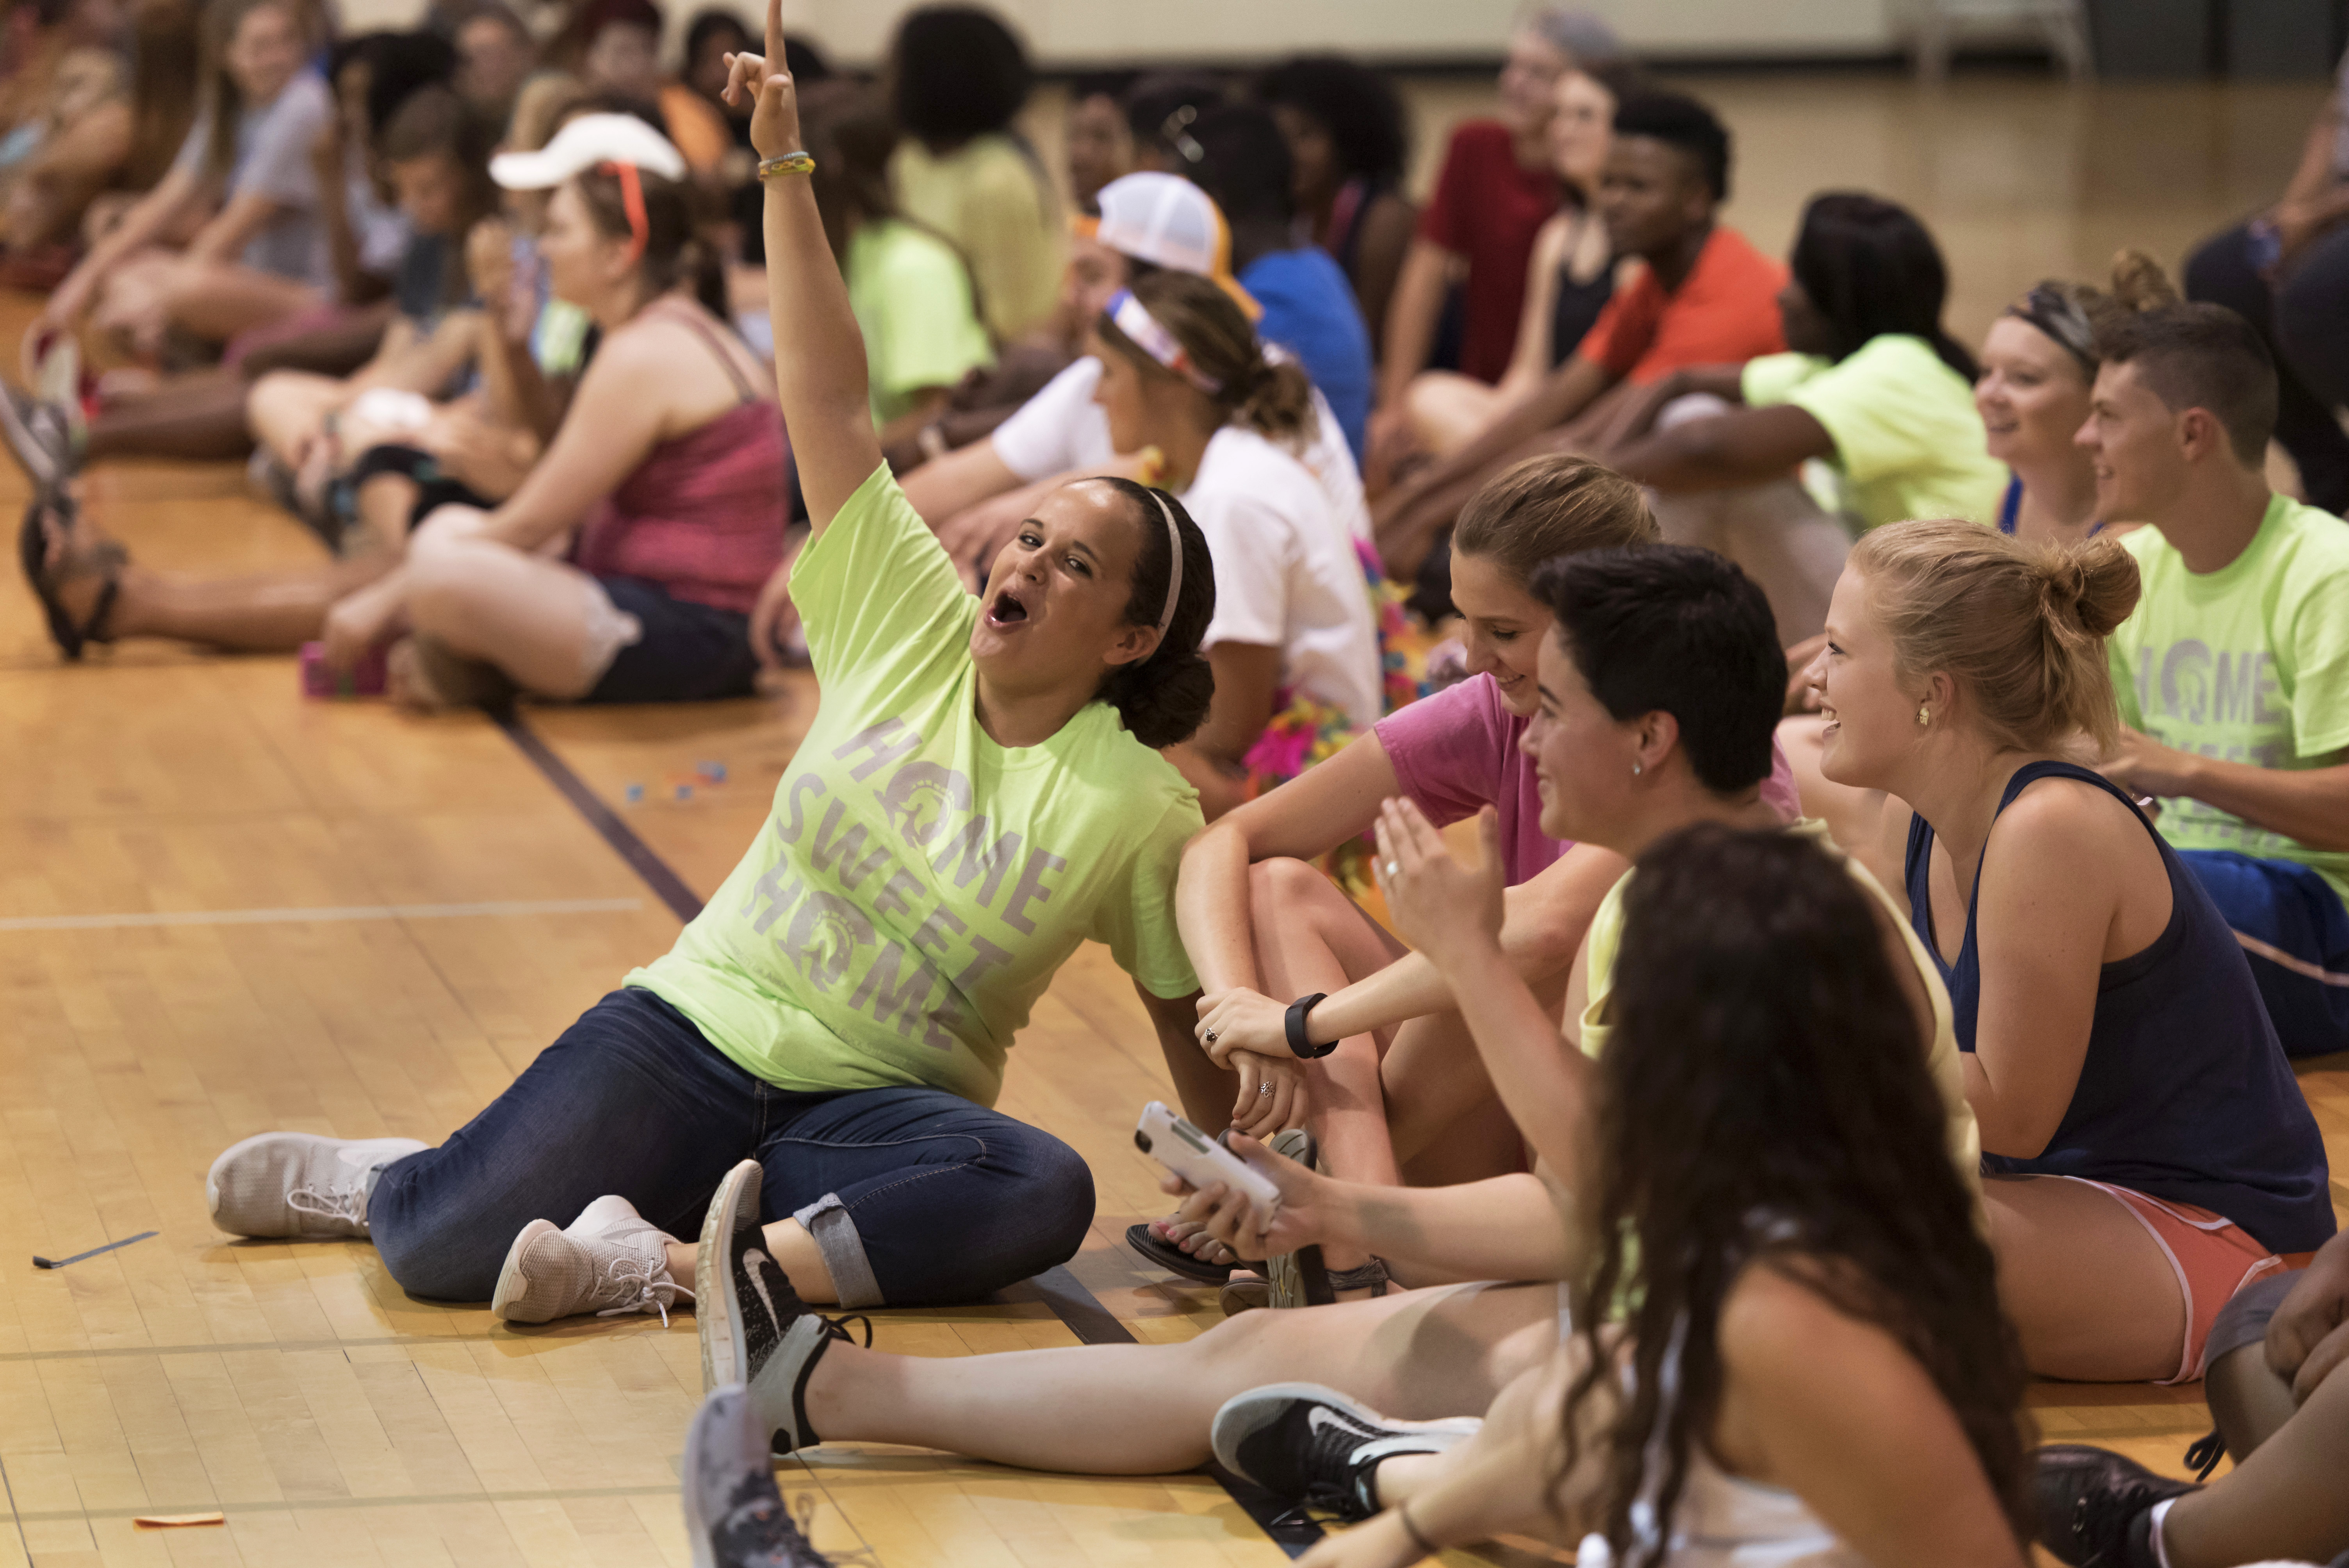 CLC students play games during team building exercises on August 13, 2015 in the athletic field house.